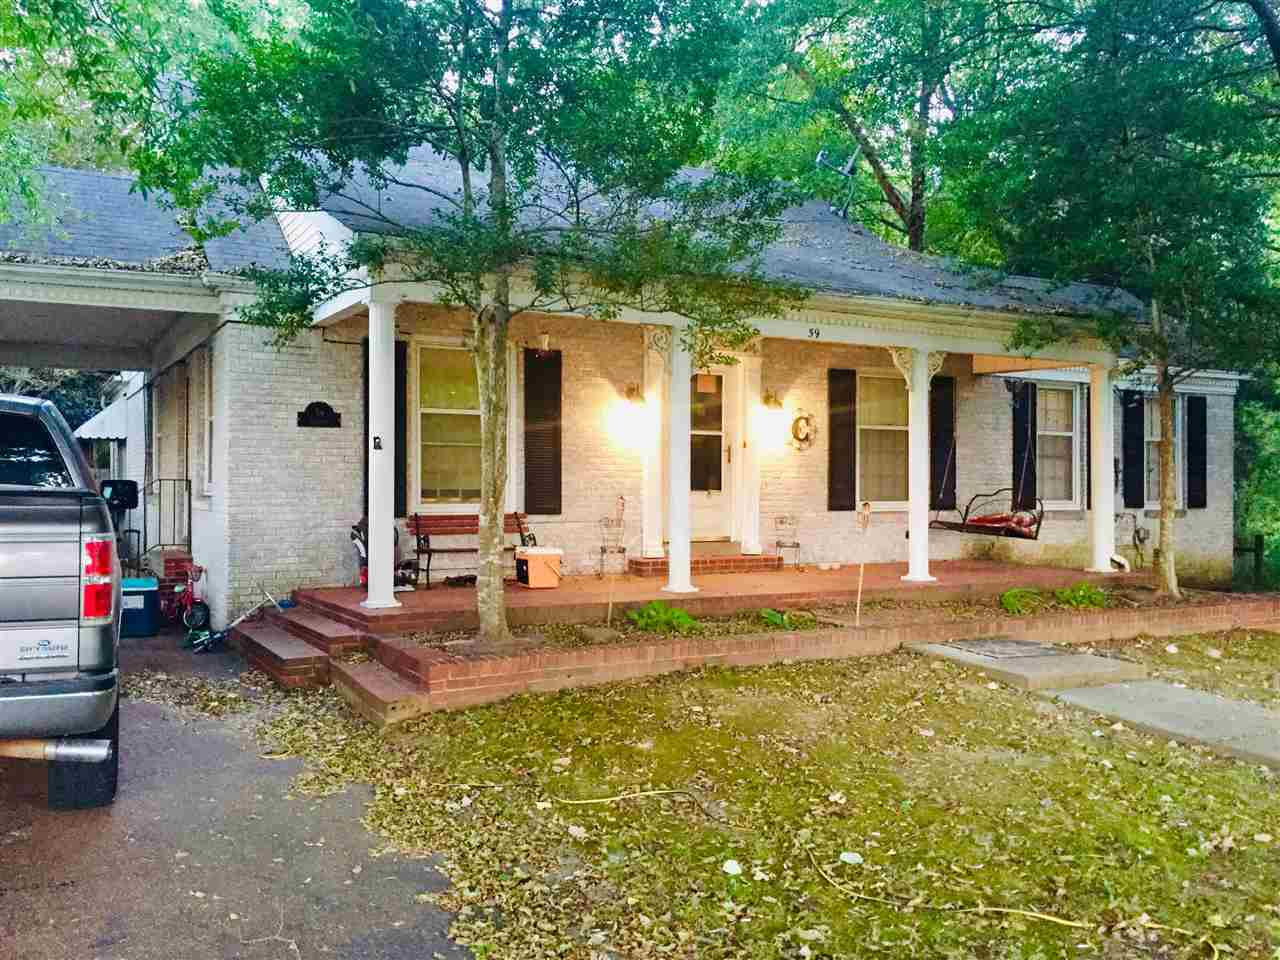 Property for sale at 59 Giltedge Rd, Munford,  TN 38058